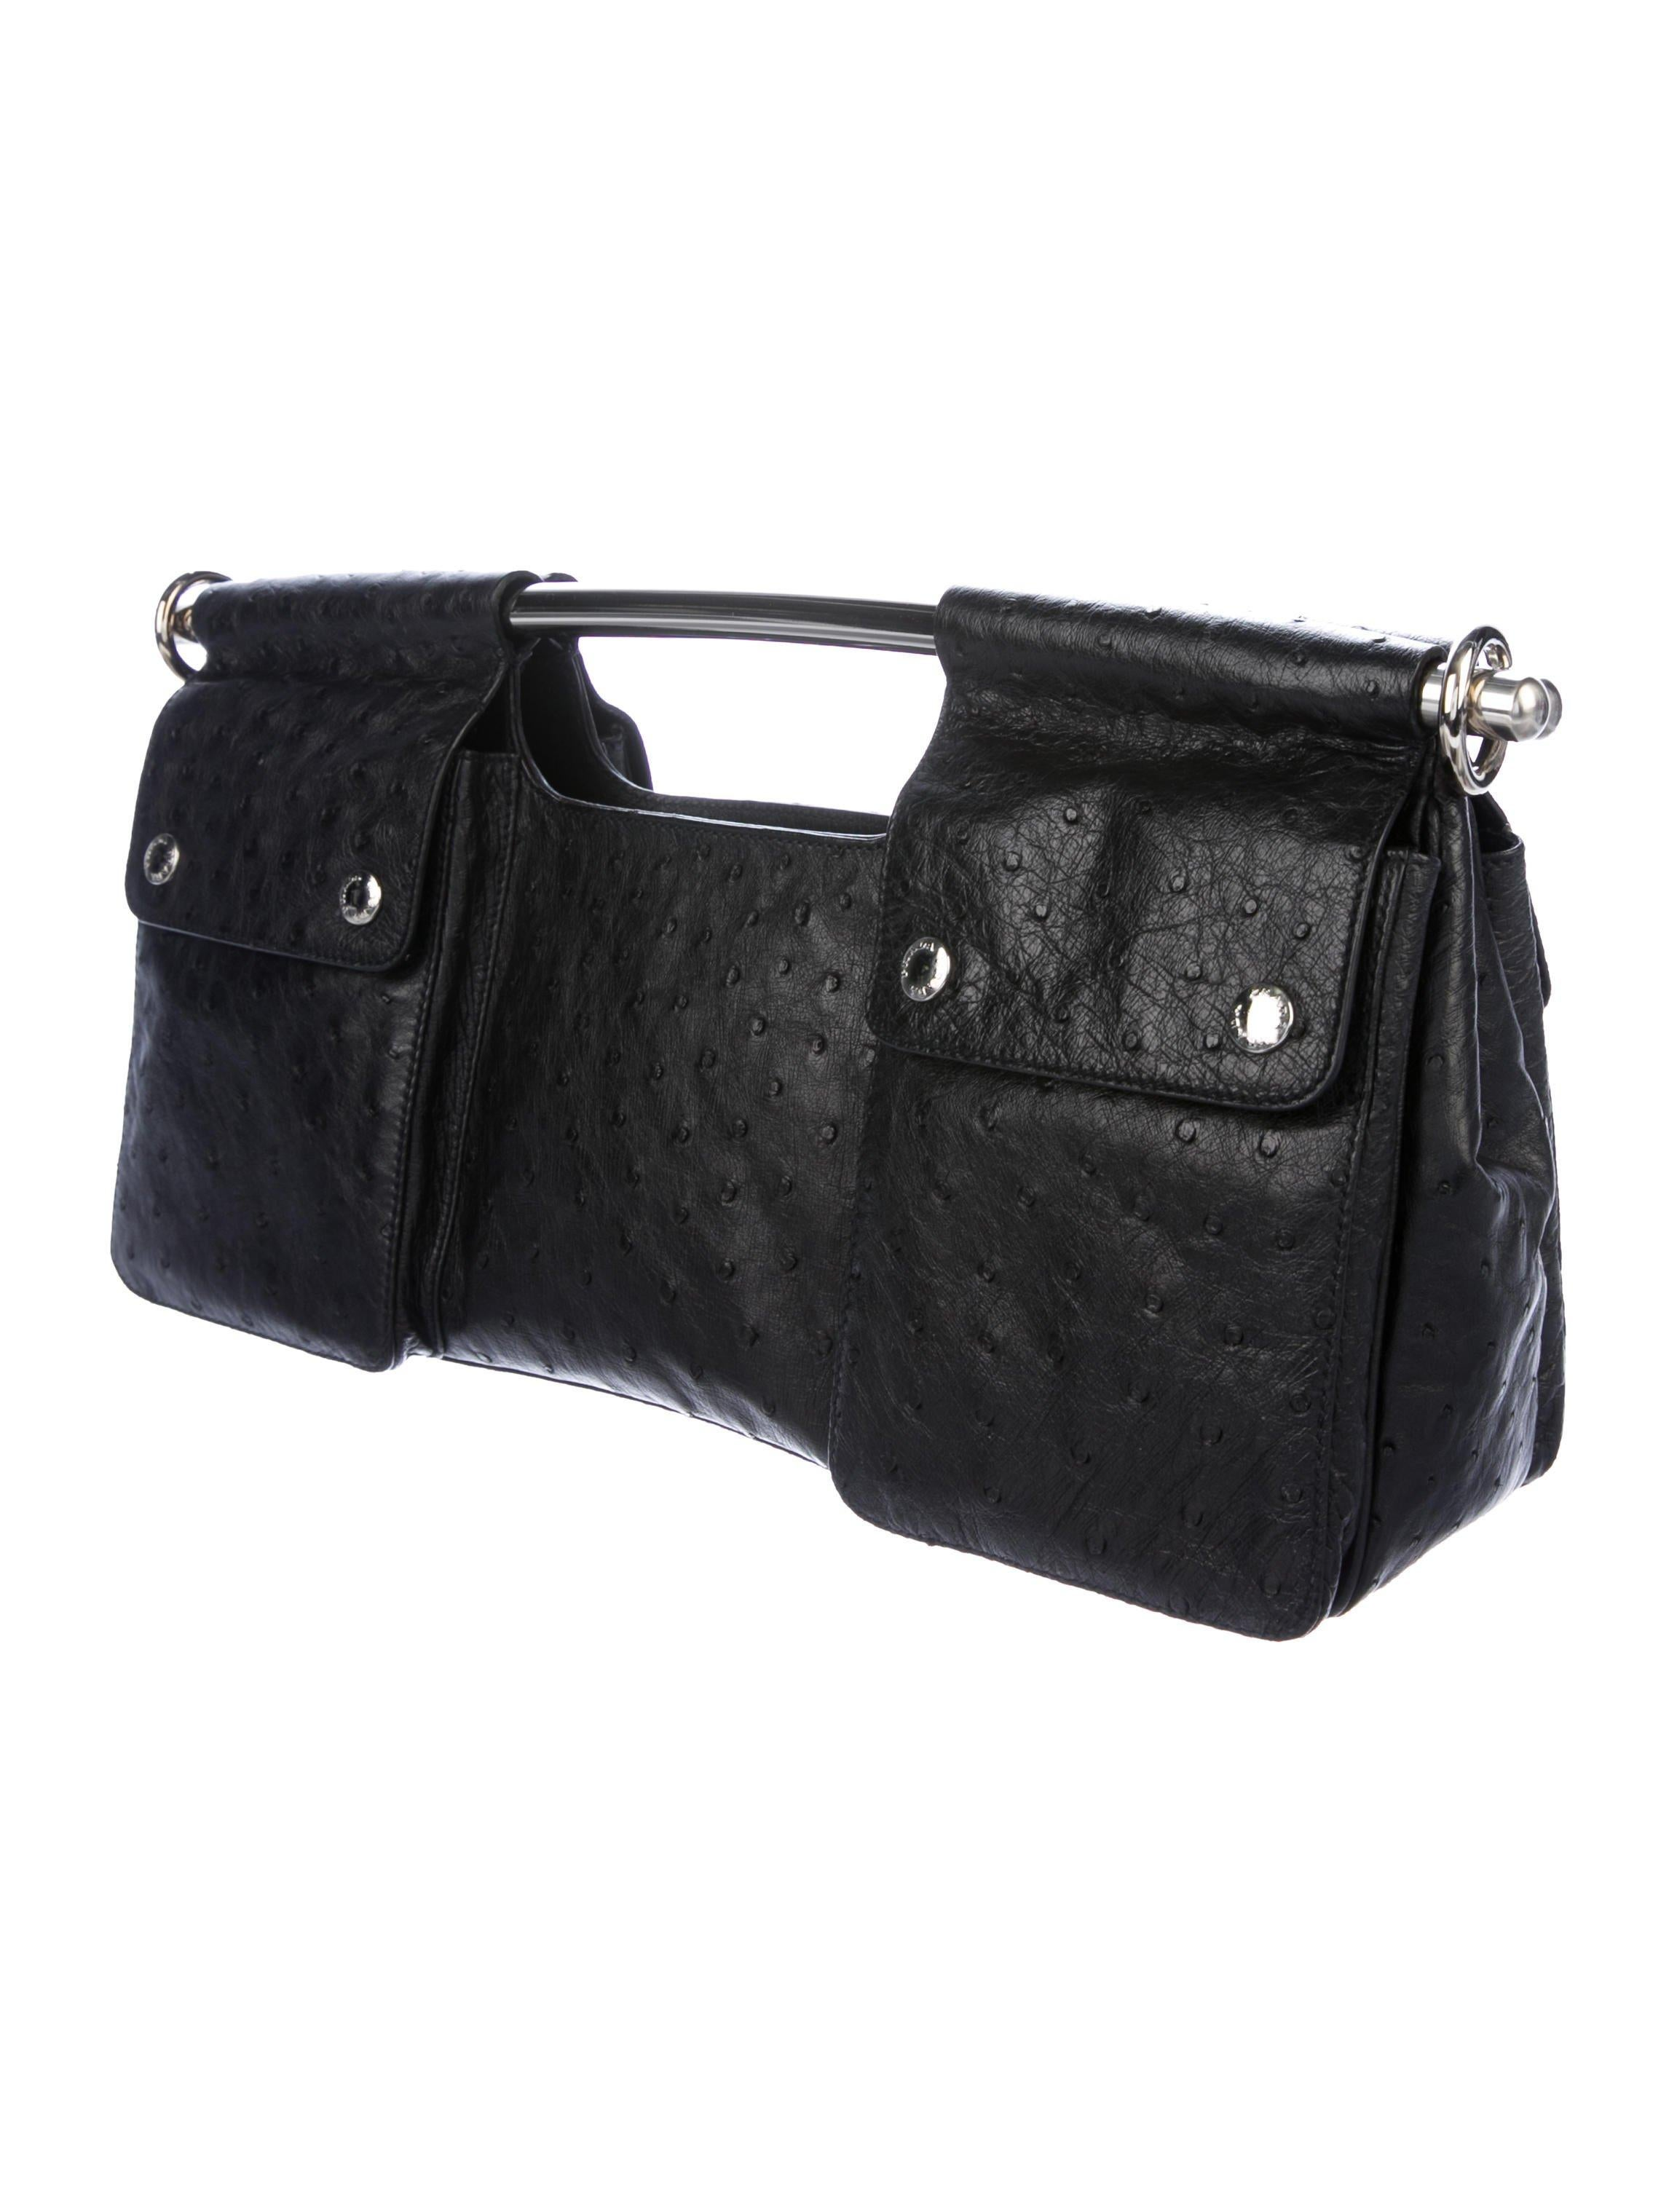 a2be7e462f1a Prada Black Ostrich Leather Metal Top Handle Bar 2 in 1 Clutch Shoulder Bag  For Sale at 1stdibs